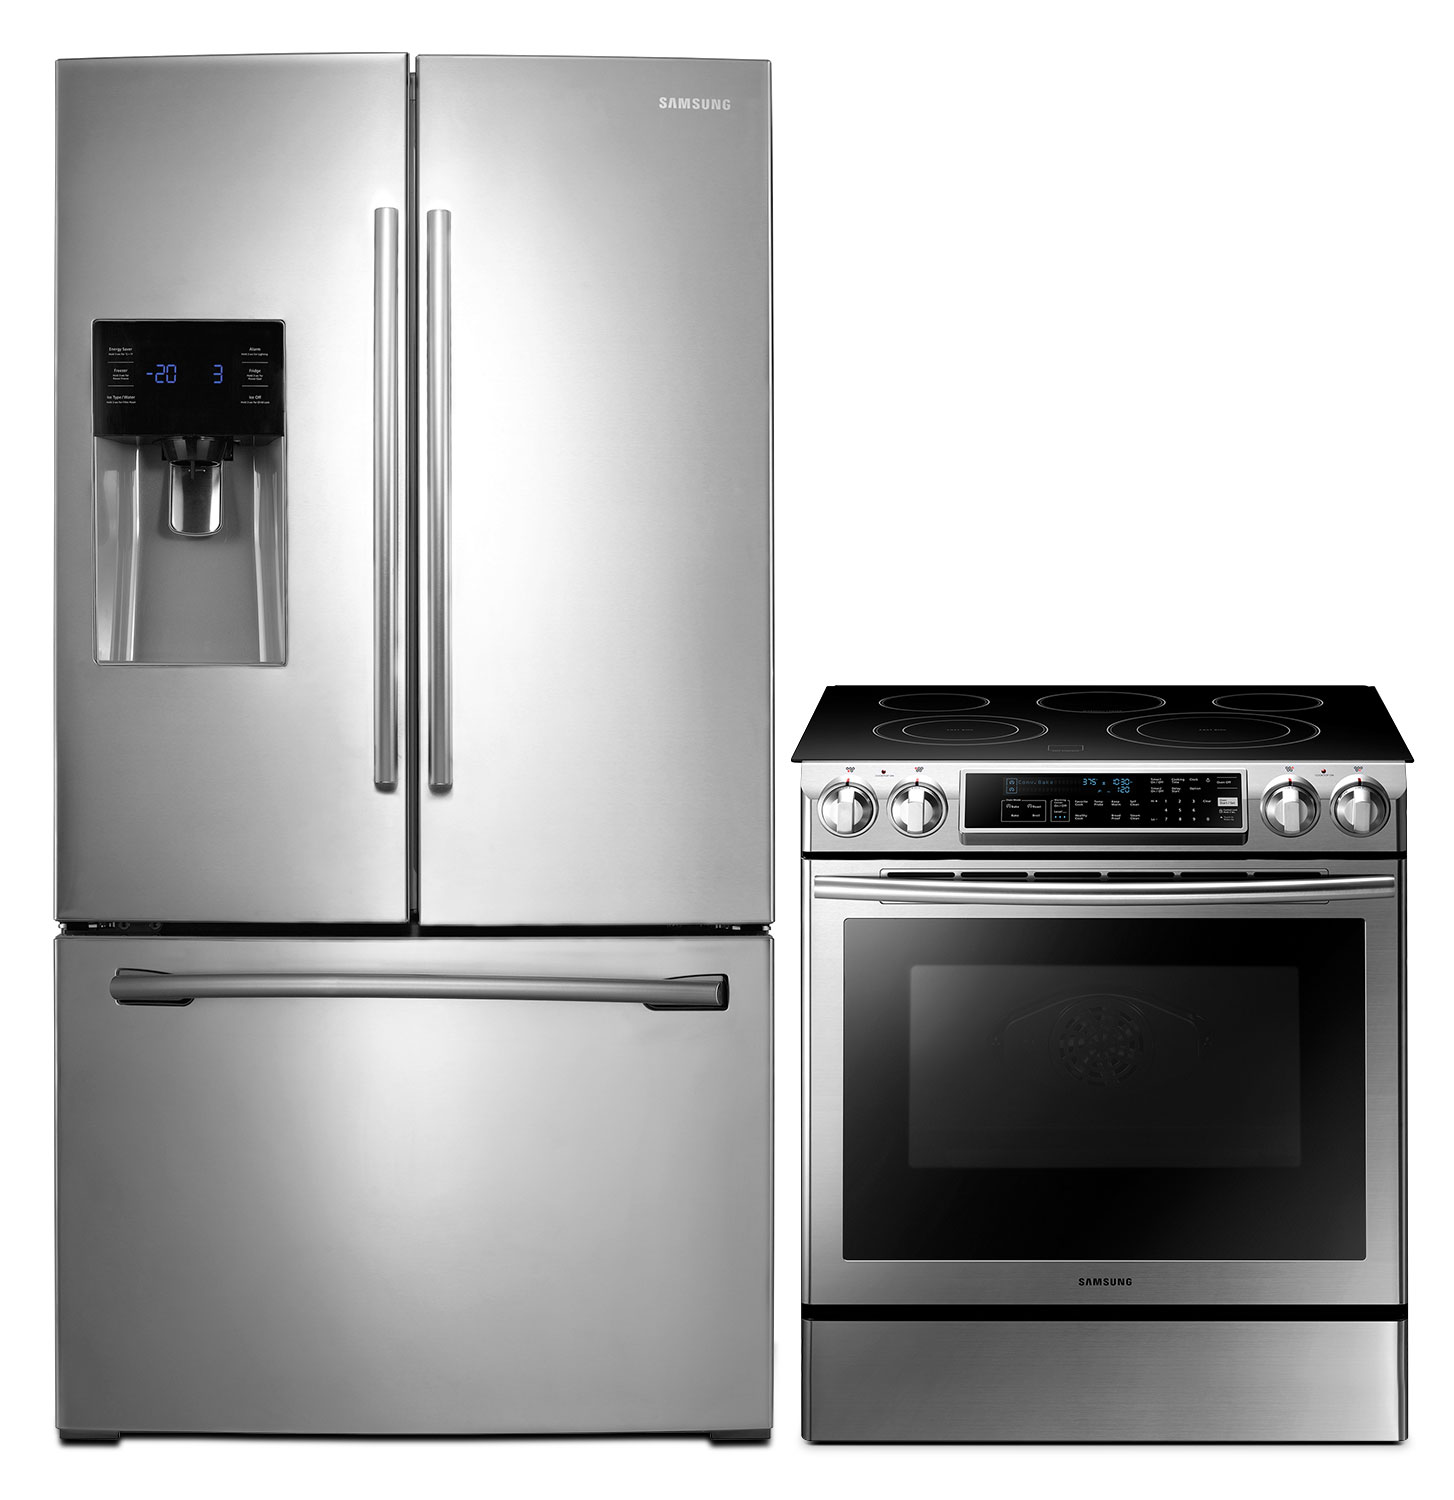 Cooking Products - Samsung 26 Cu. Ft. French-Door Refrigerator and 5.8 Cu. Ft. Electric Range – Stainless Steel